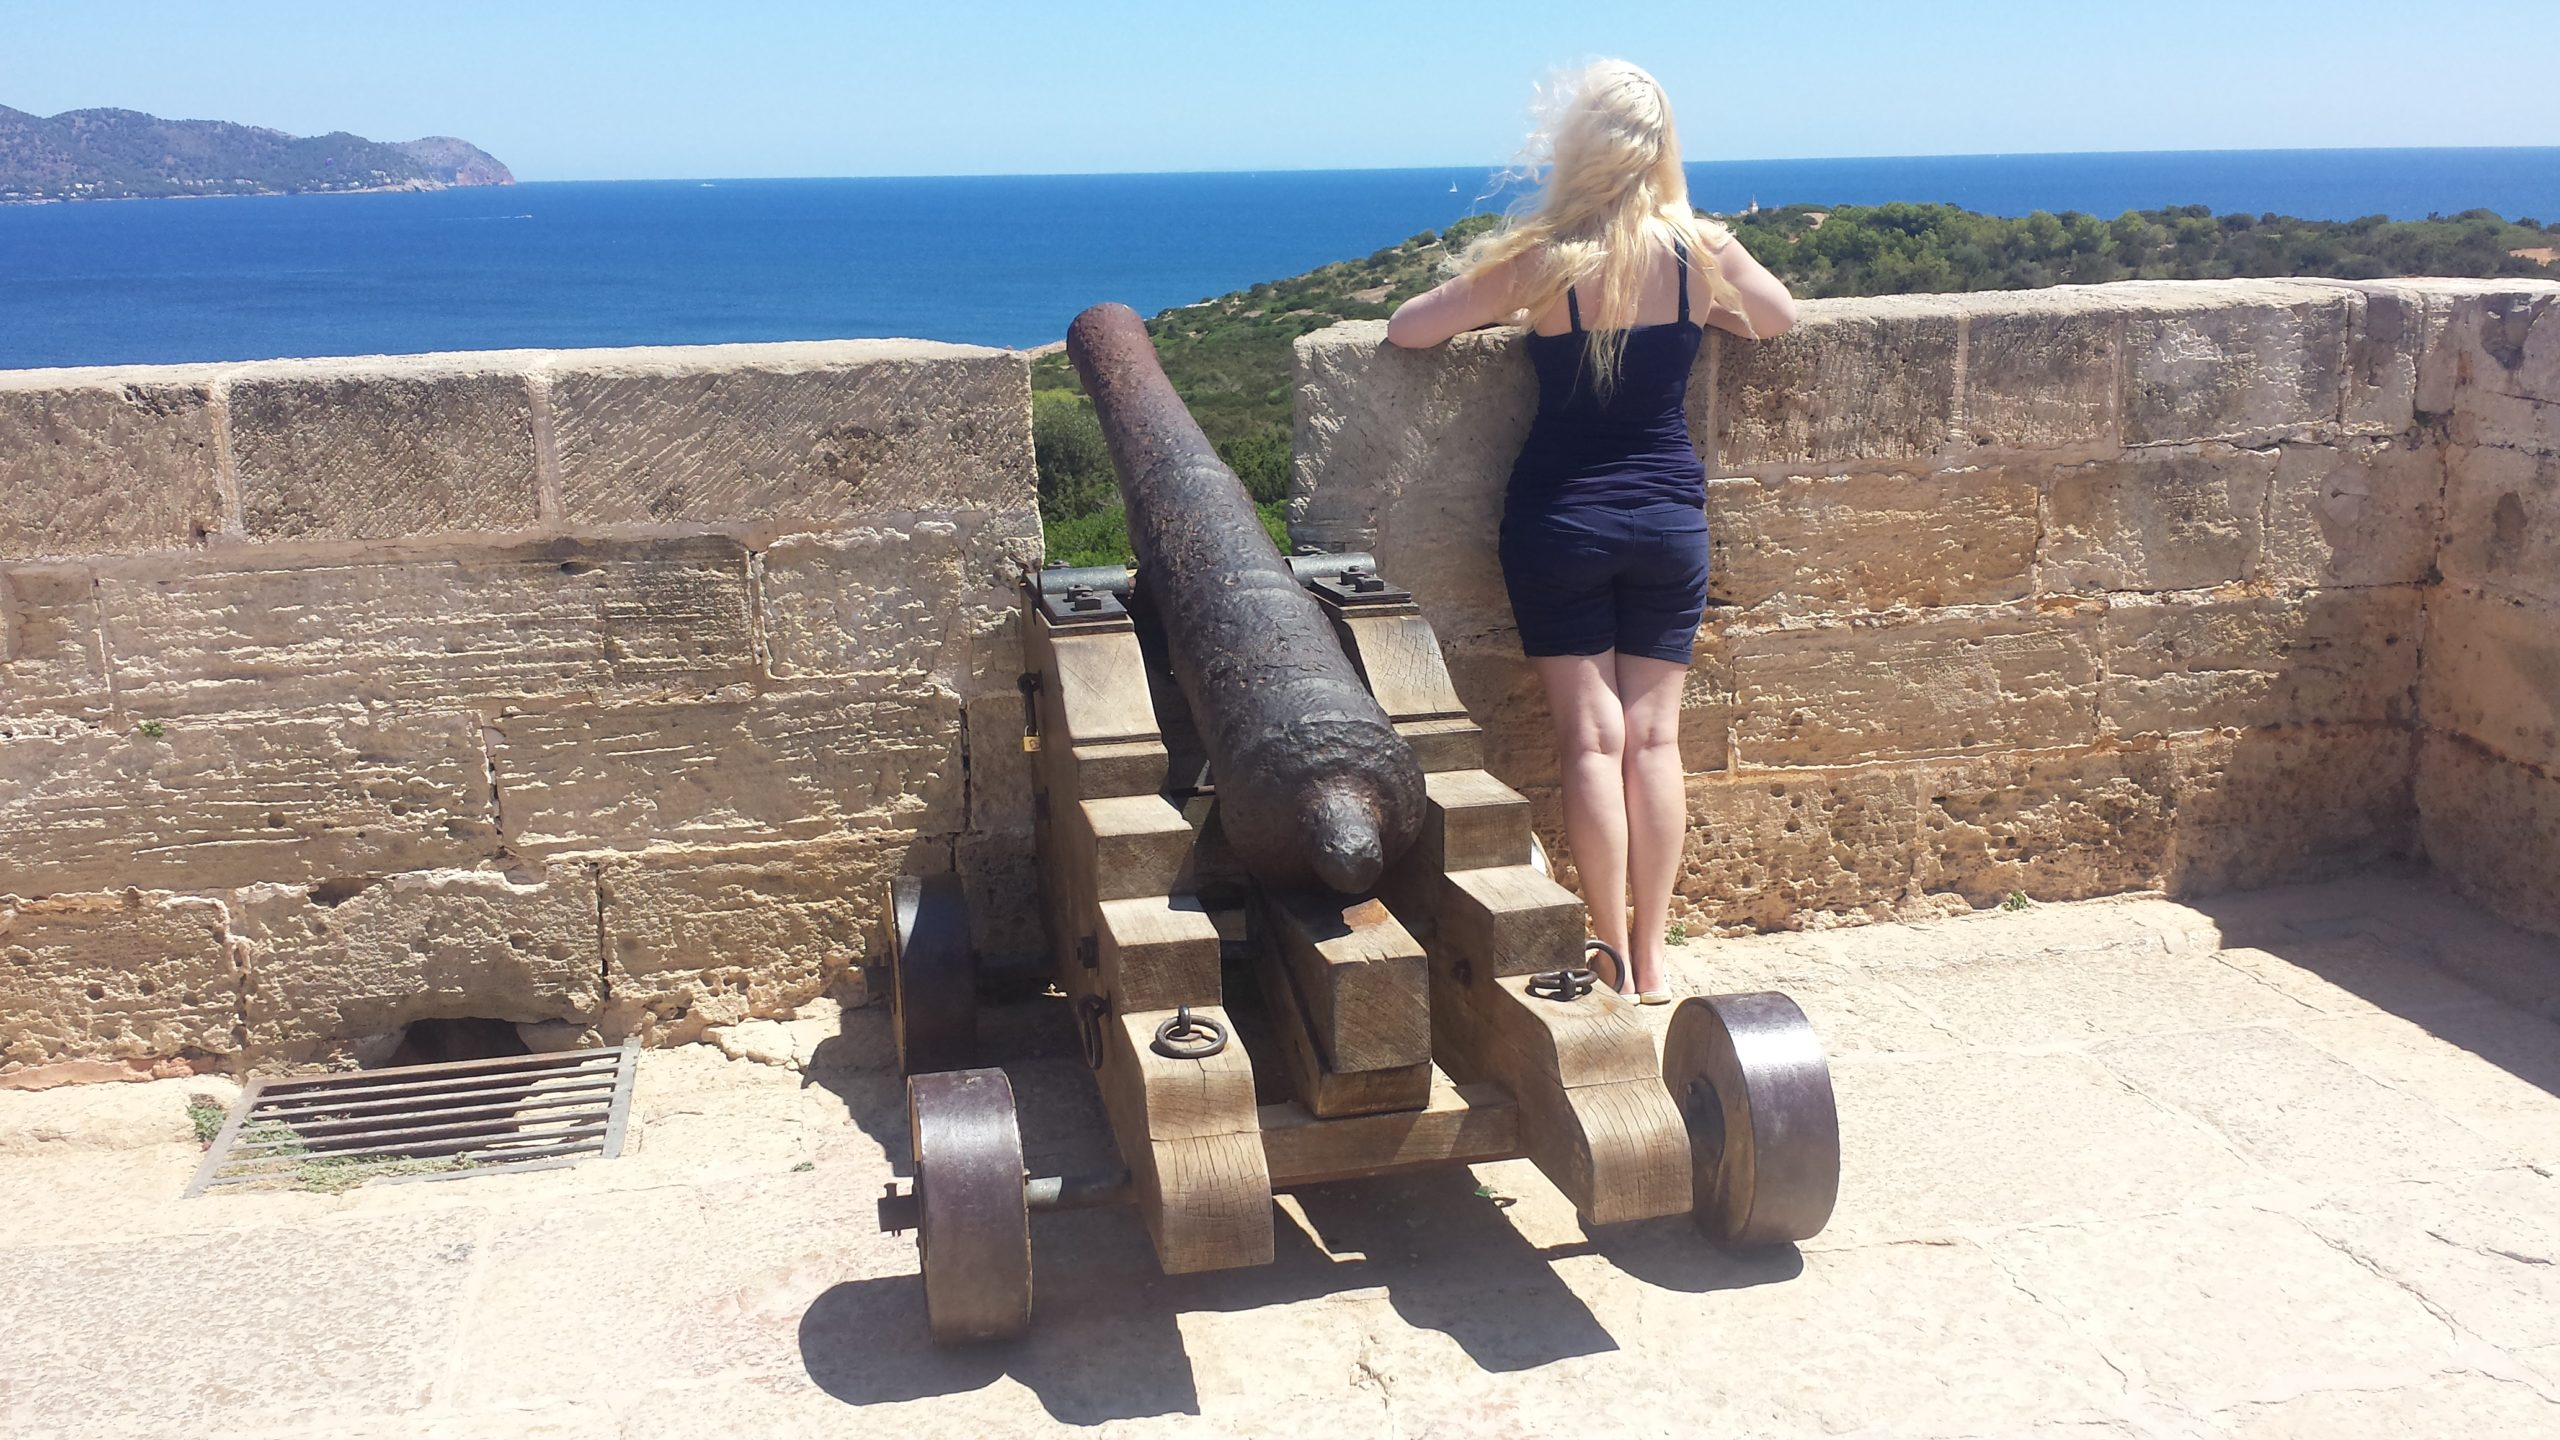 Queen of Mallorca, Queen of Cala Millor, Queen of the Andalusiens and the Catalans, and the First Men, Lord of the Five Baleares, Protector of the Realm, Khaleesi of the Great Blue Sea, the (S)Unburnt, Mother of Dragons.  Khaleesi has a cannon :D